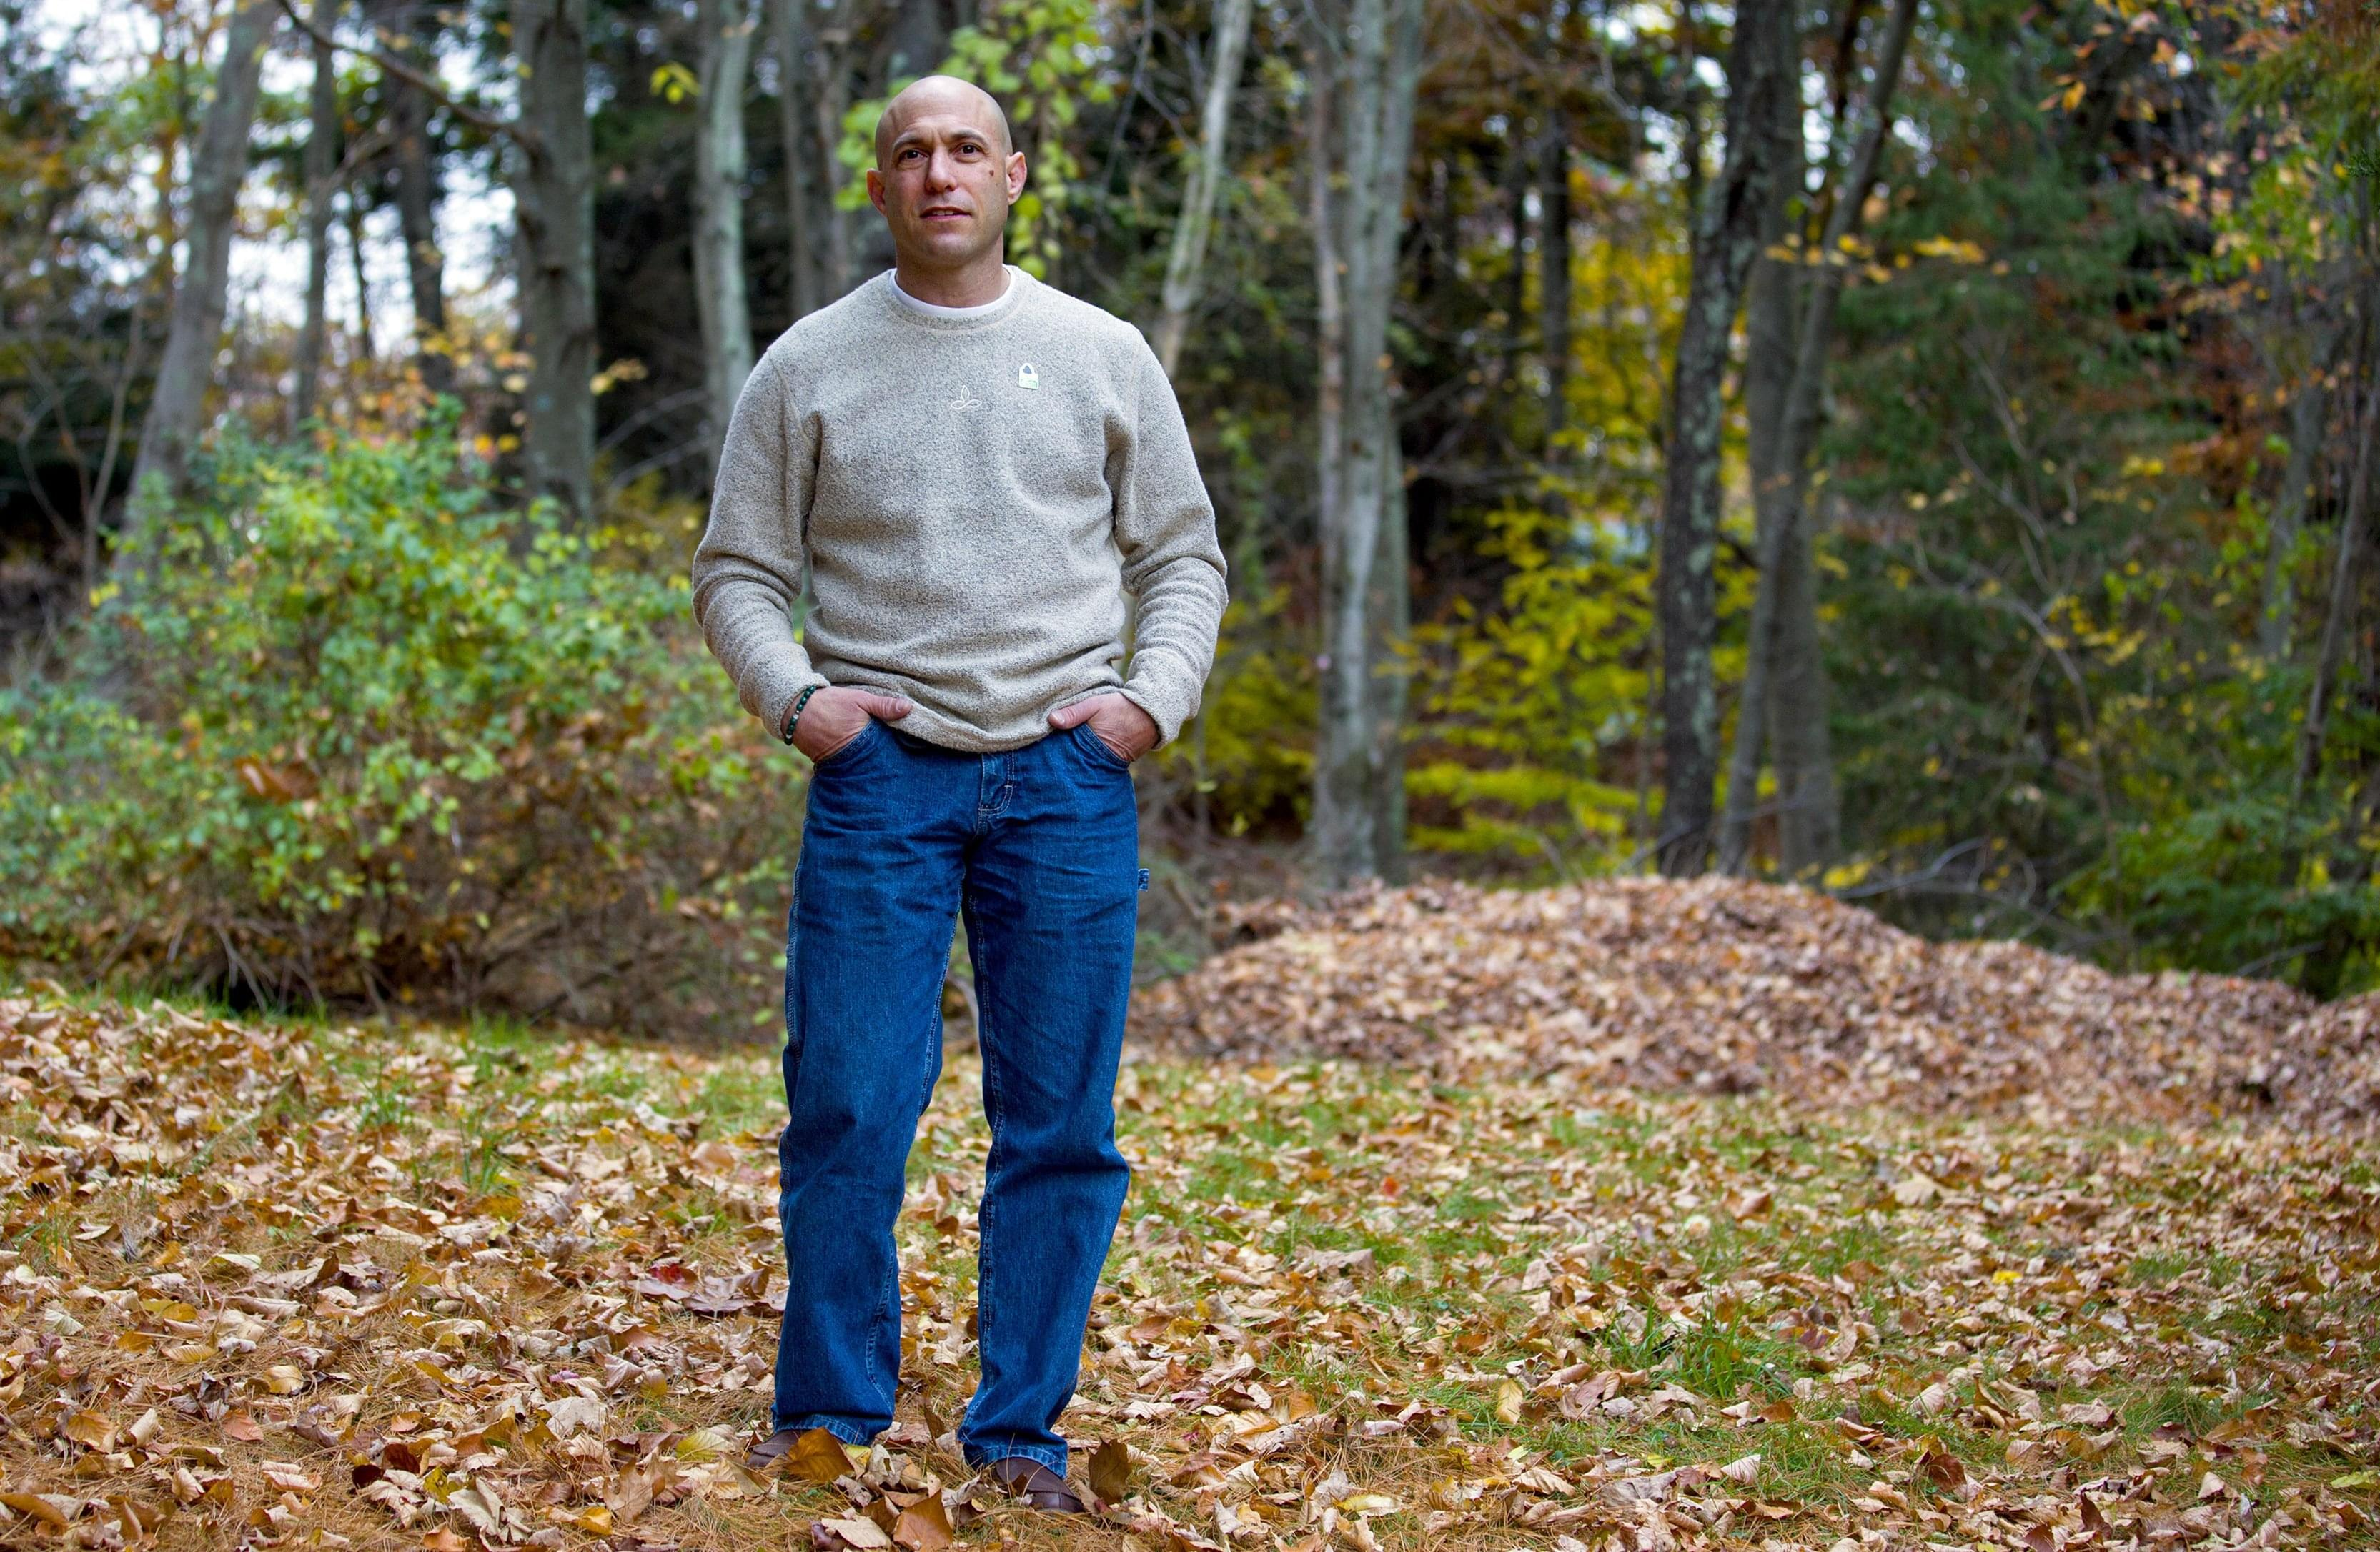 The father of a Sandy Hook victim dies from an apparent suicide